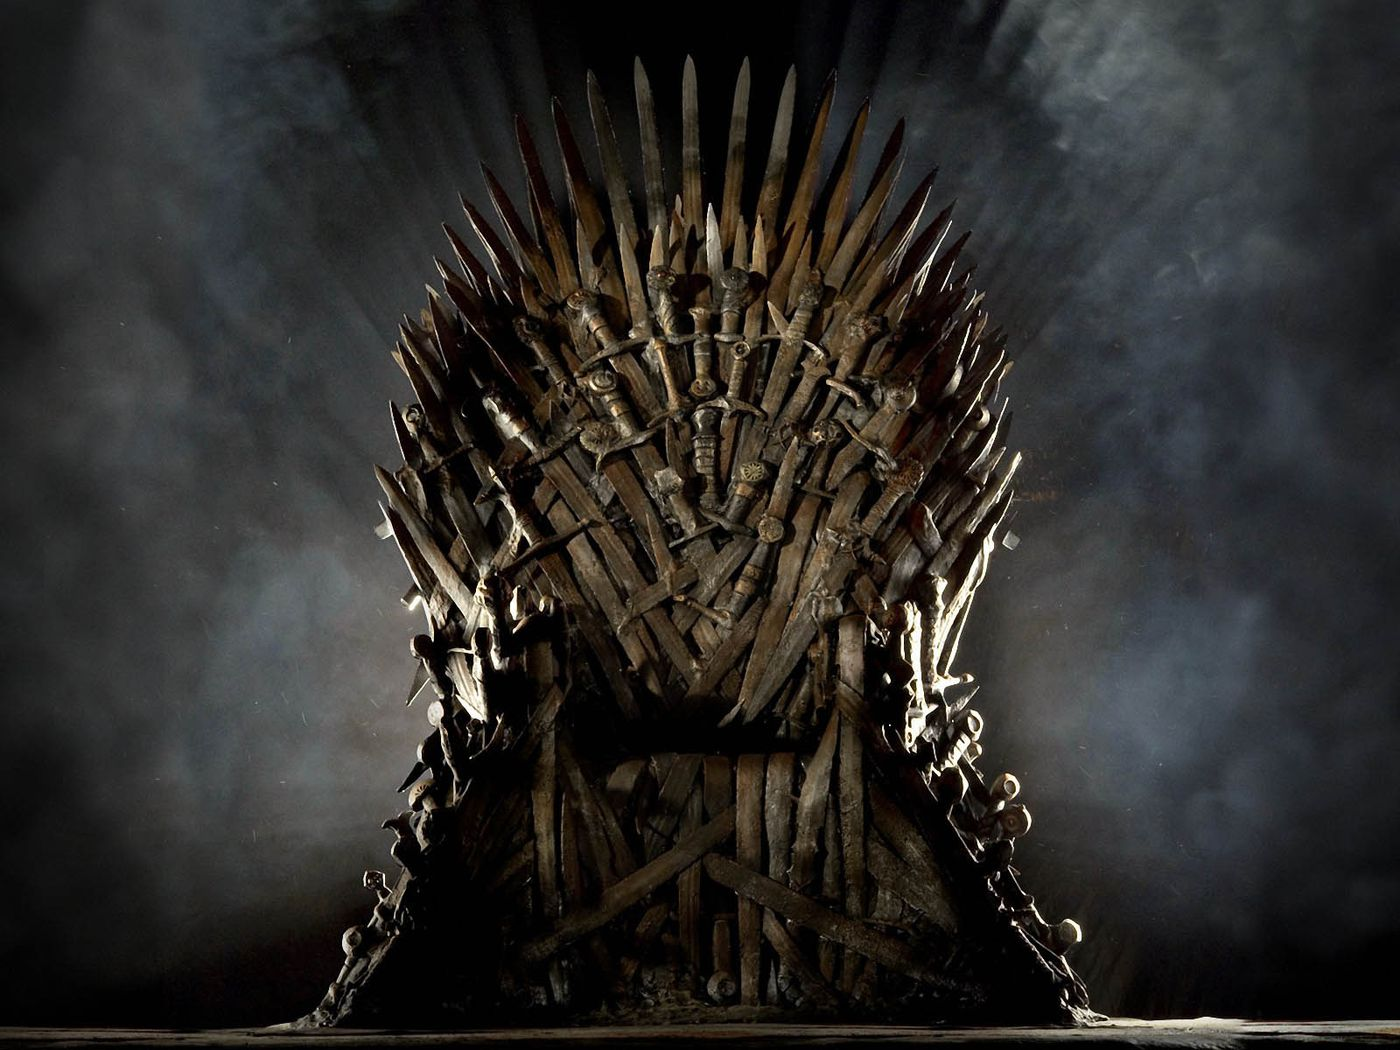 HBO president rules out possibility of 'Game of Thrones' sequel series, spinoff